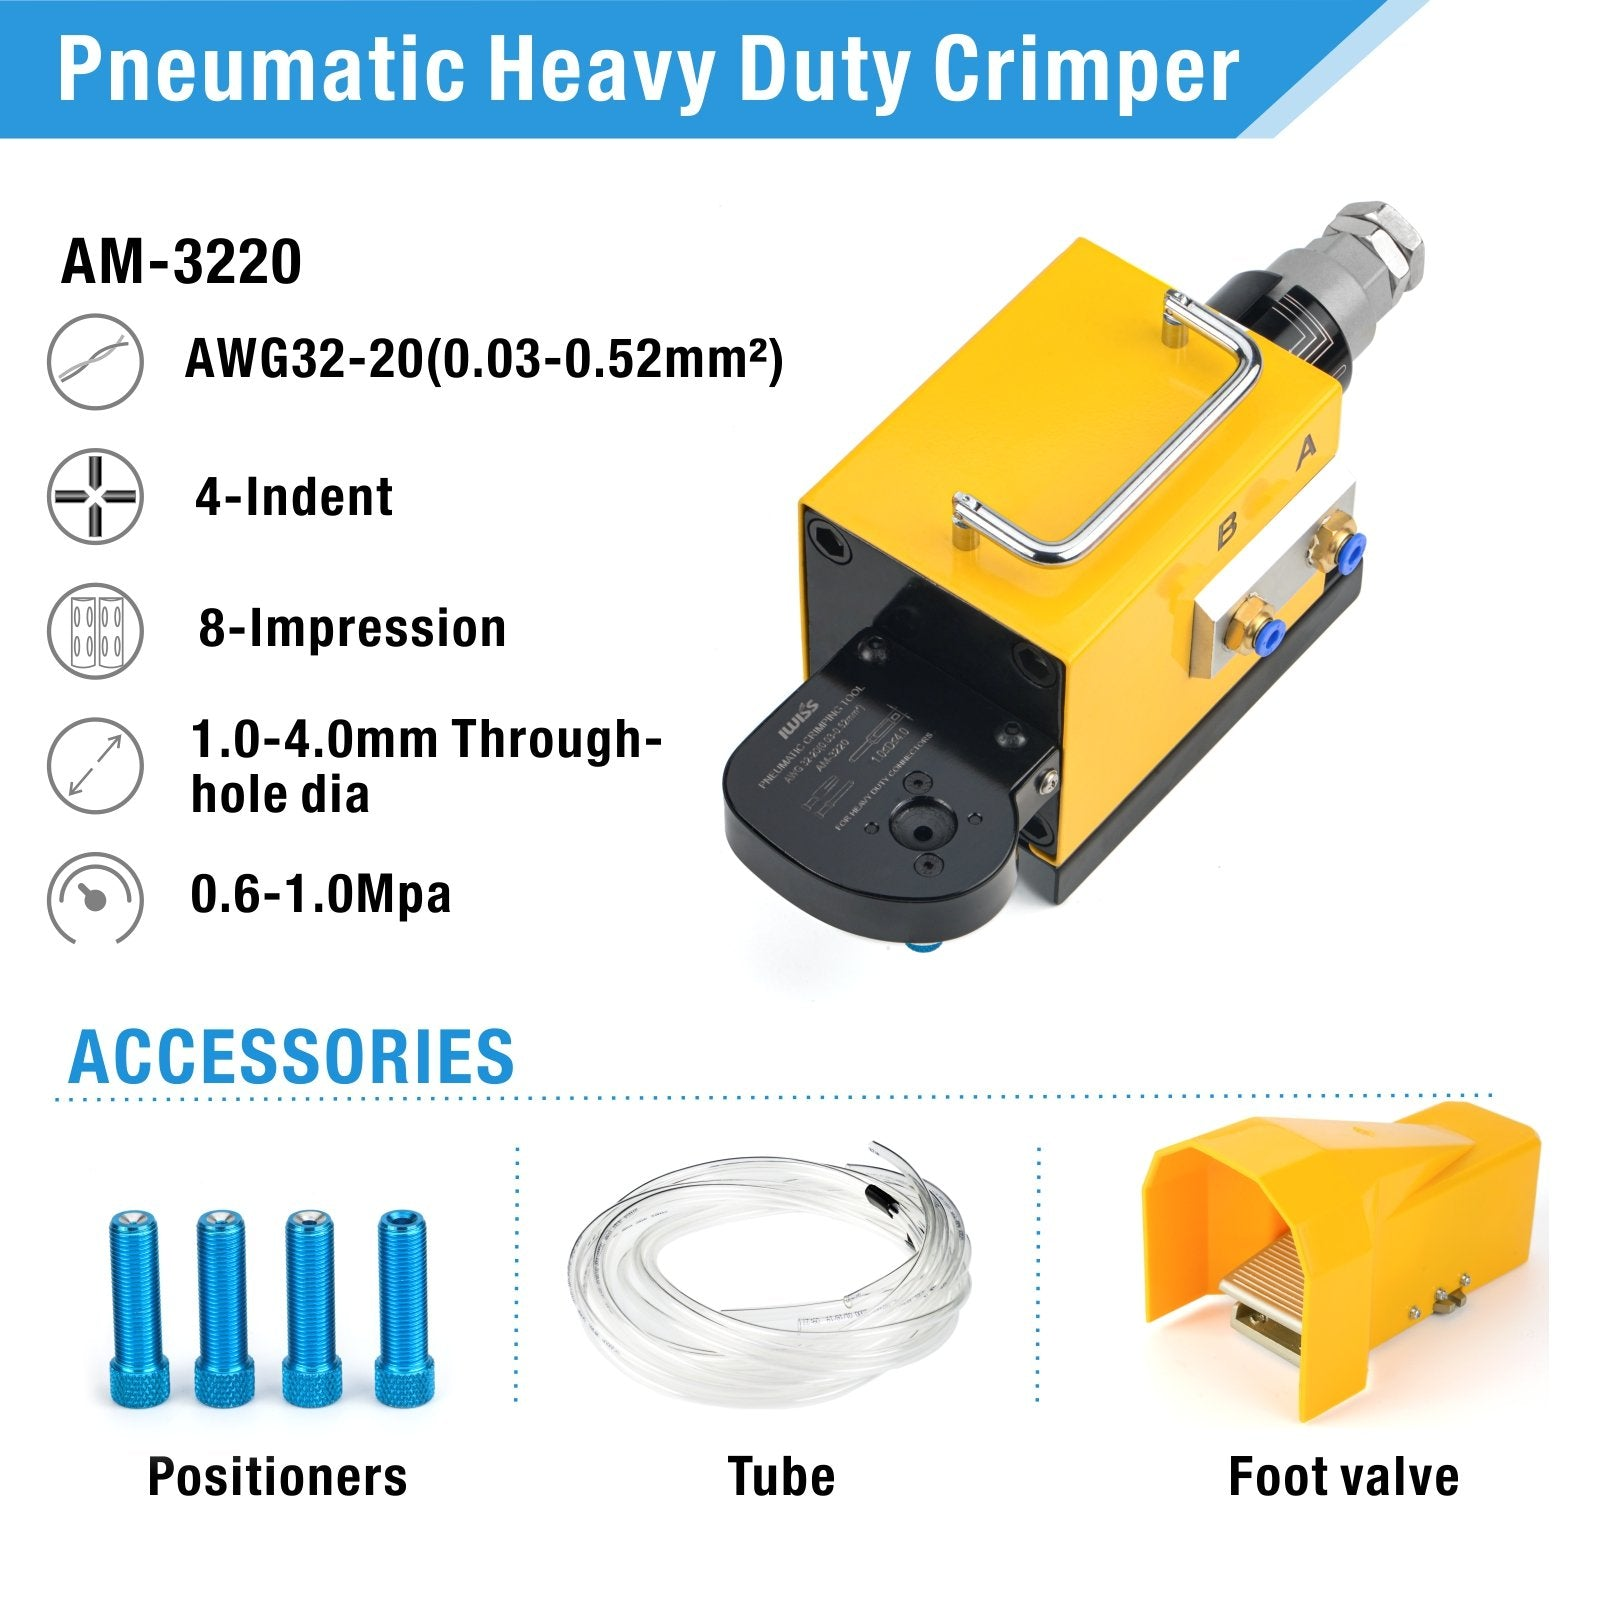 AM-3220 Pneumatic Crimping Machine for Solid Contacts and Heavy Duty Contacts AWG32-20